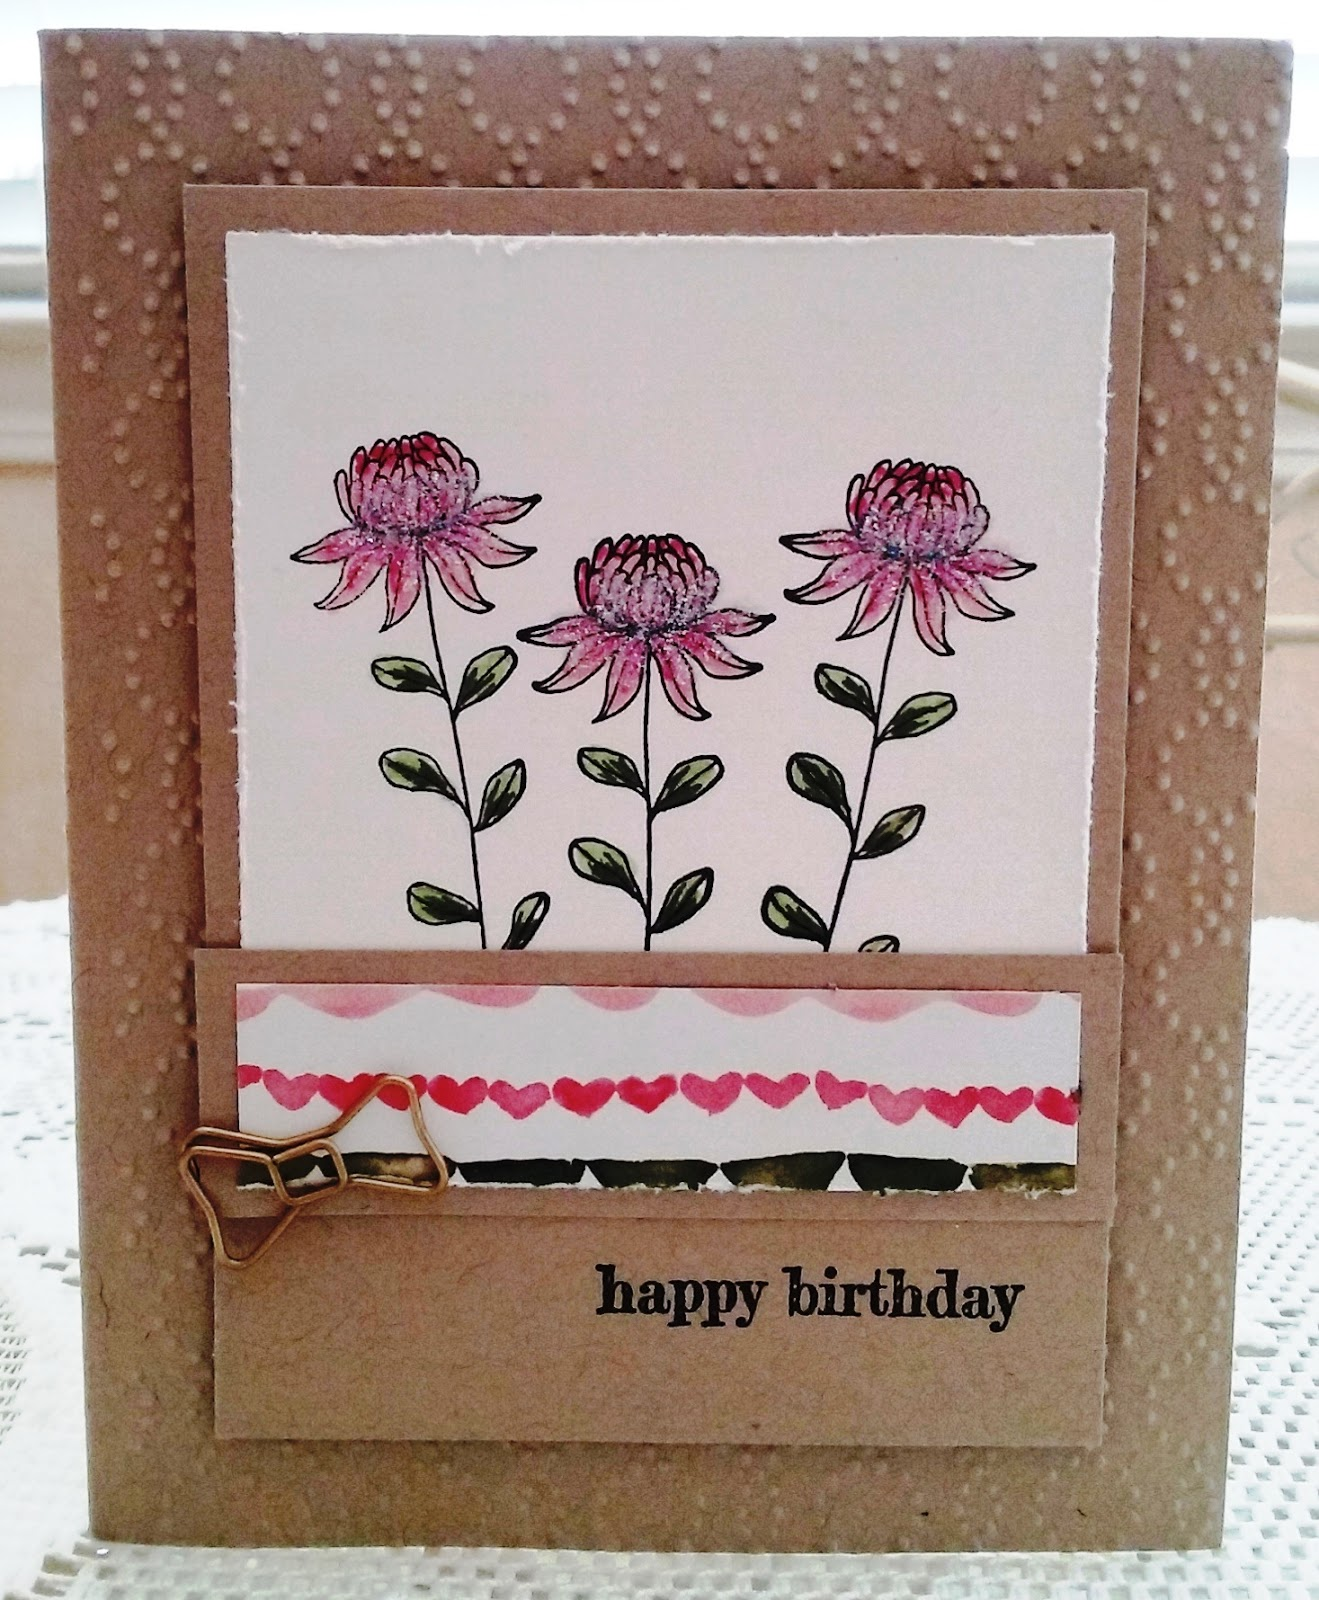 Chatterbox Creations A Sister In Law Birthday In June